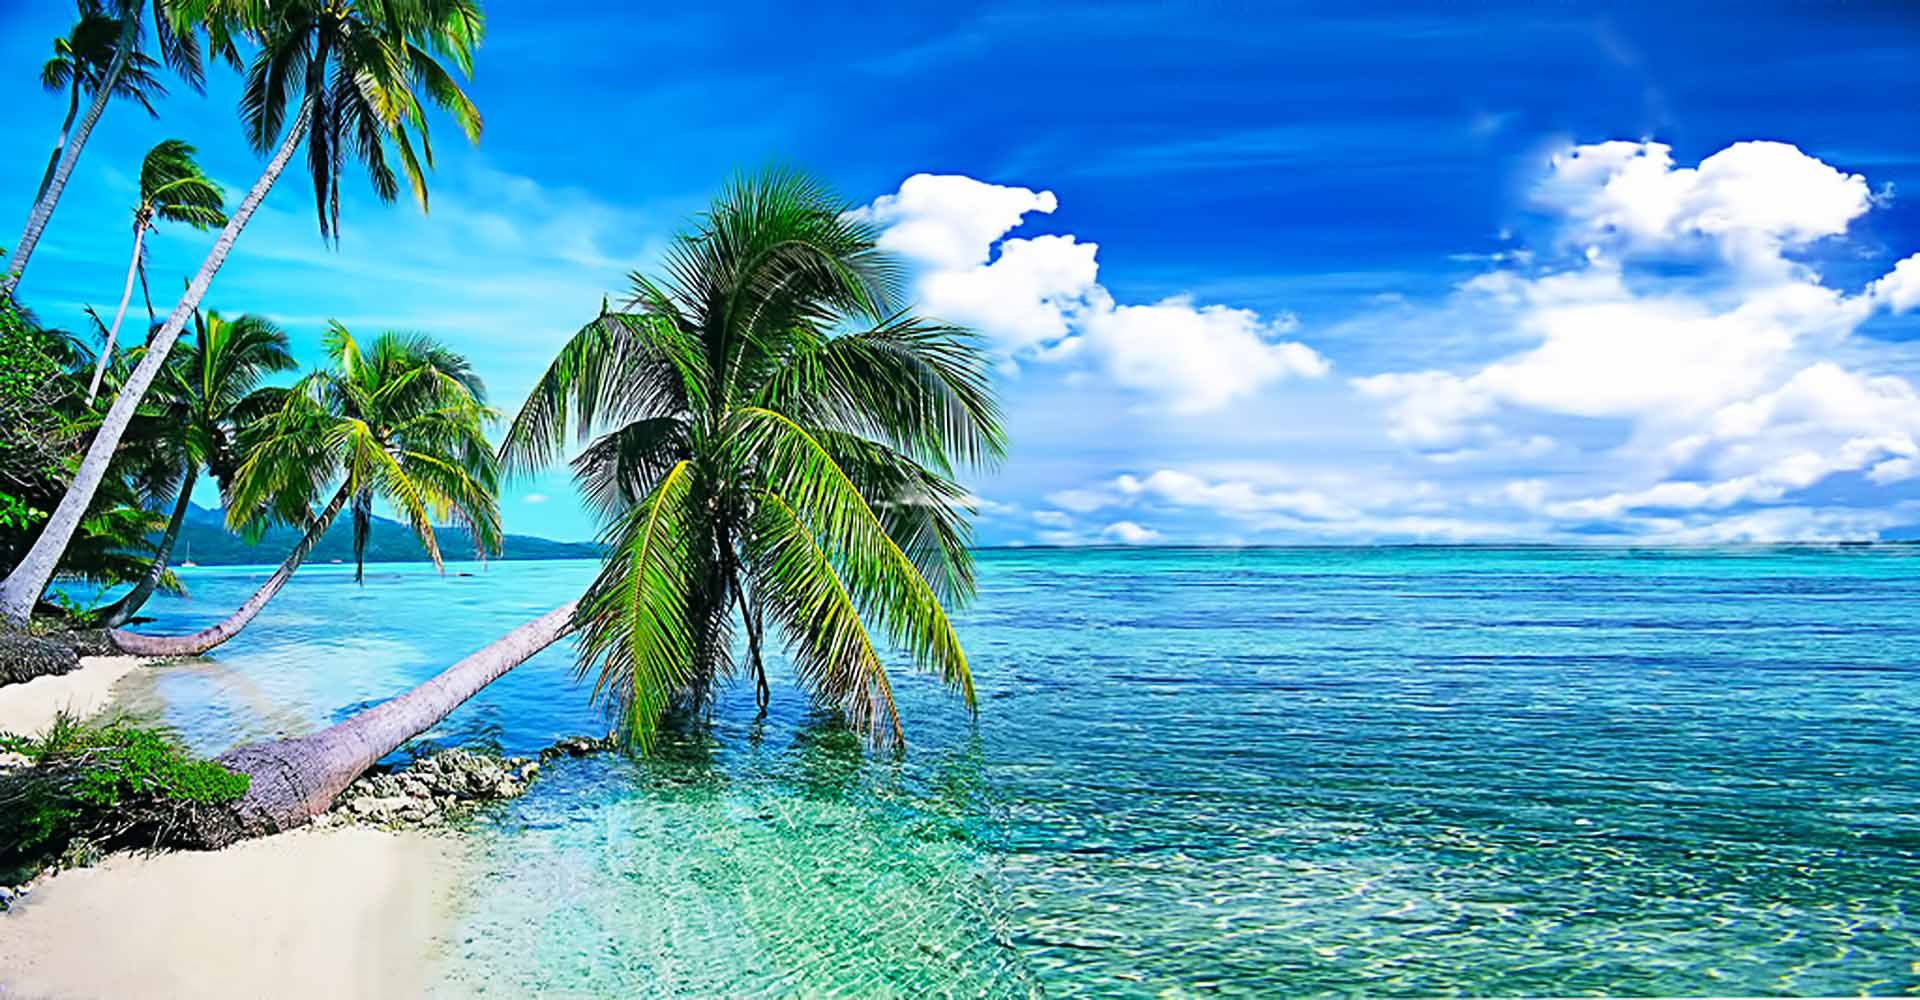 Live Wallpapers For Pc Hd 64 Wallpapers Hd Wallpapers Beach Wallpaper Nature Wallpaper Wallpaper Pc